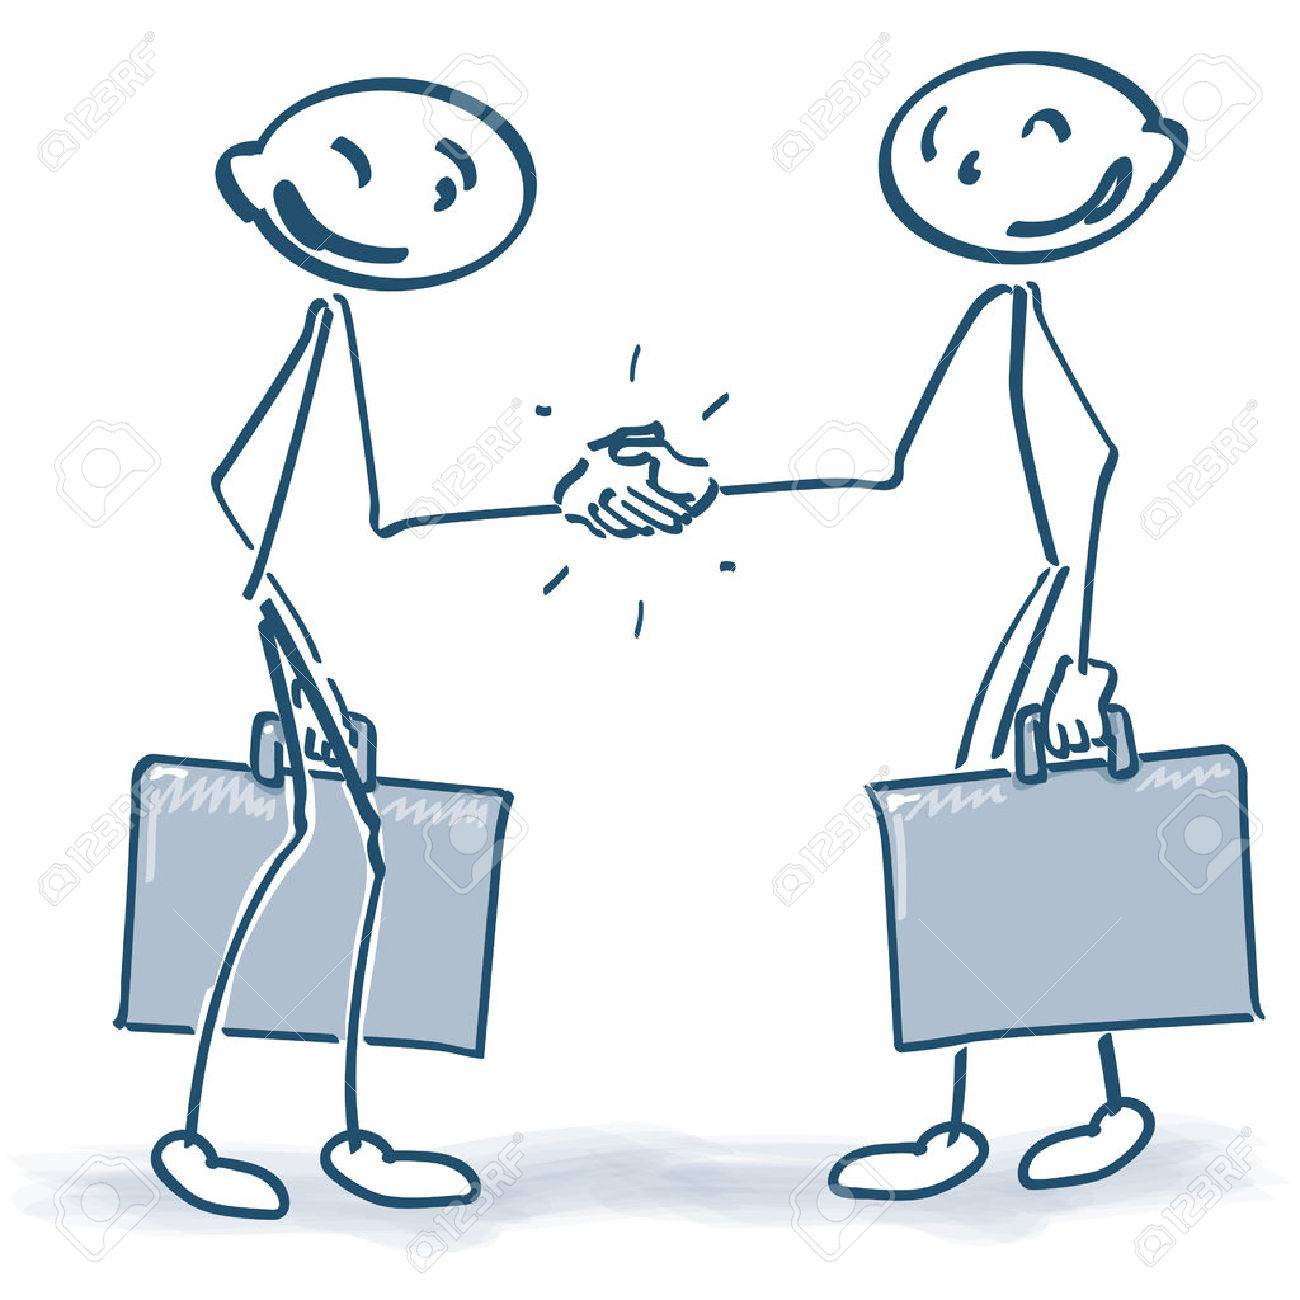 Stick Figures with suitcases when shaking hands - 39661842